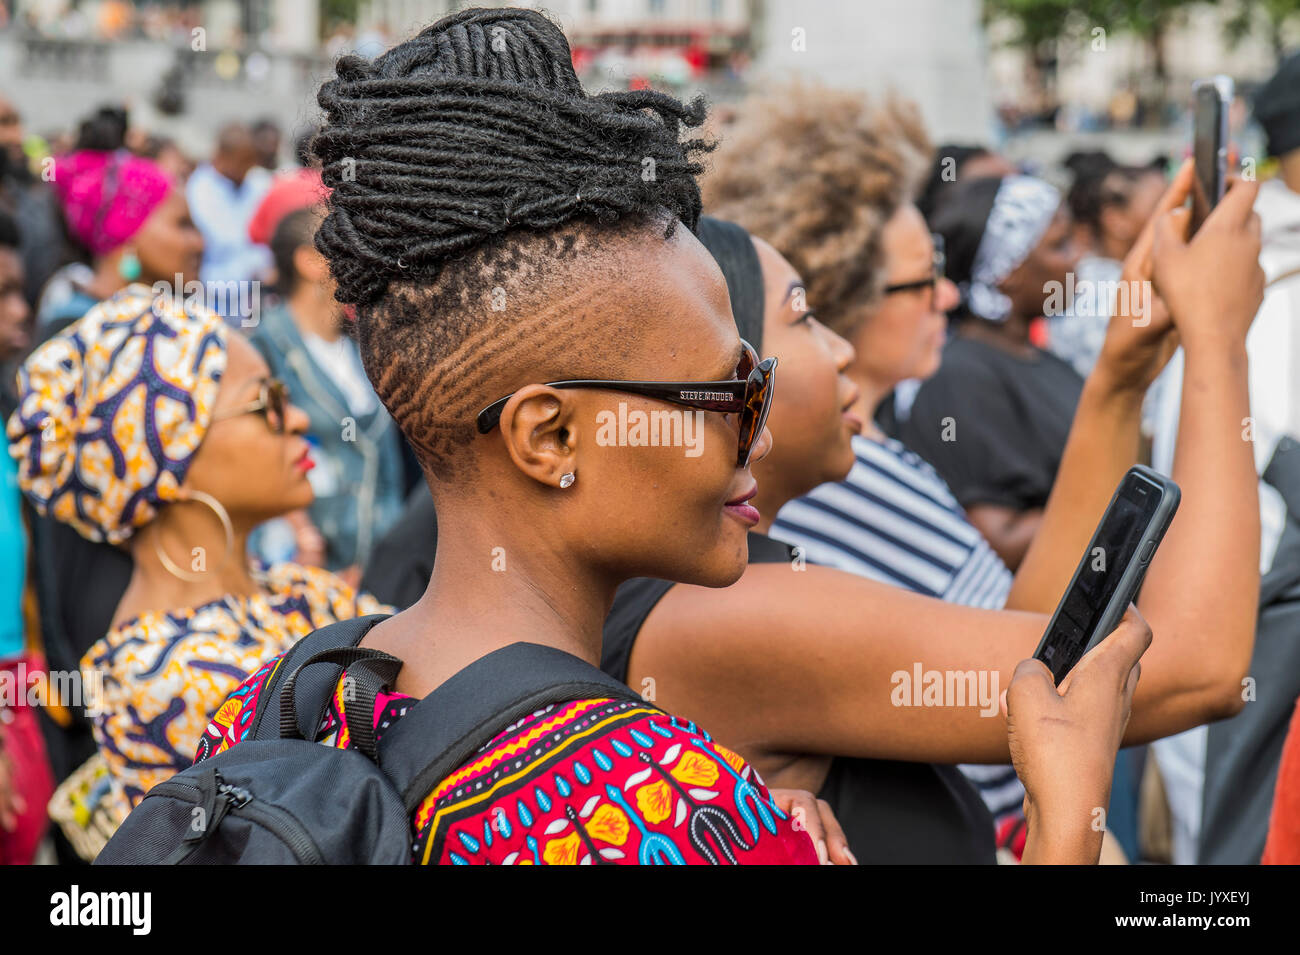 London, UK. 20th Aug, 2017. The crowd is multi ethnic but predominantly black and is entertained by thought provoking Stock Photo